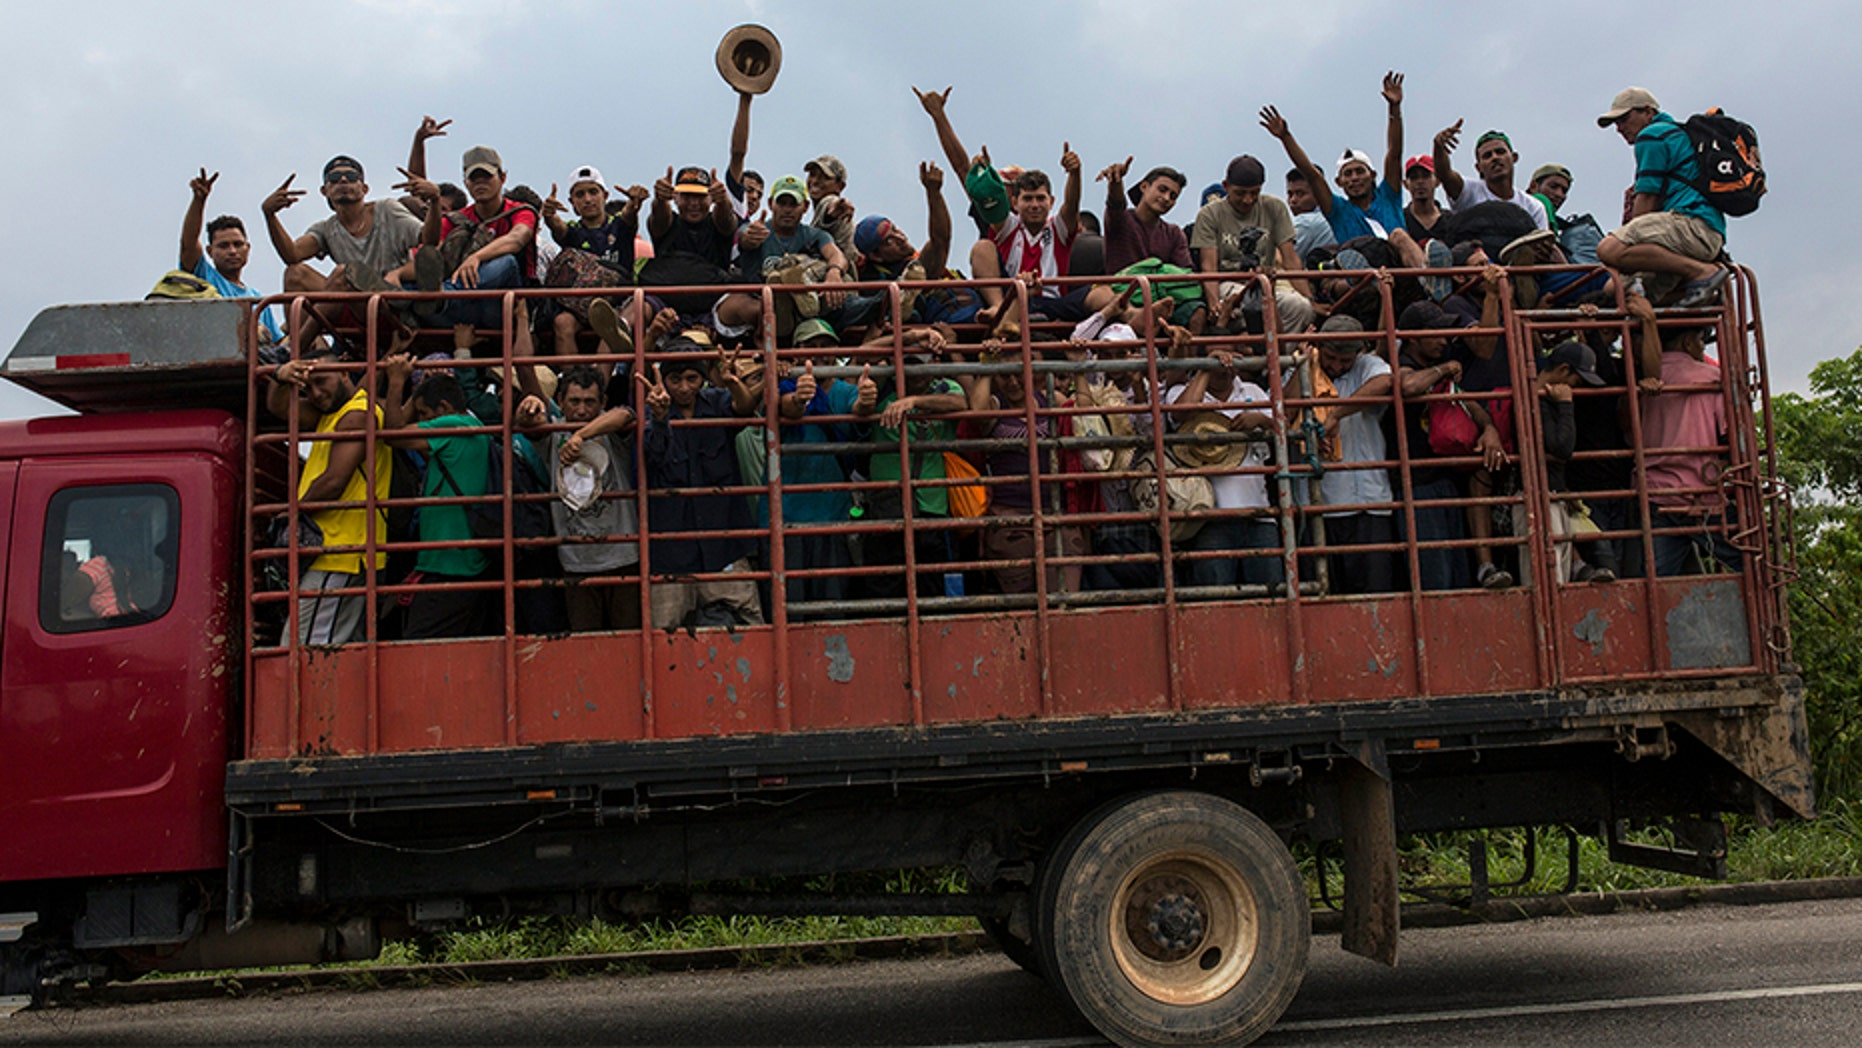 White House to end asylum access on southern border